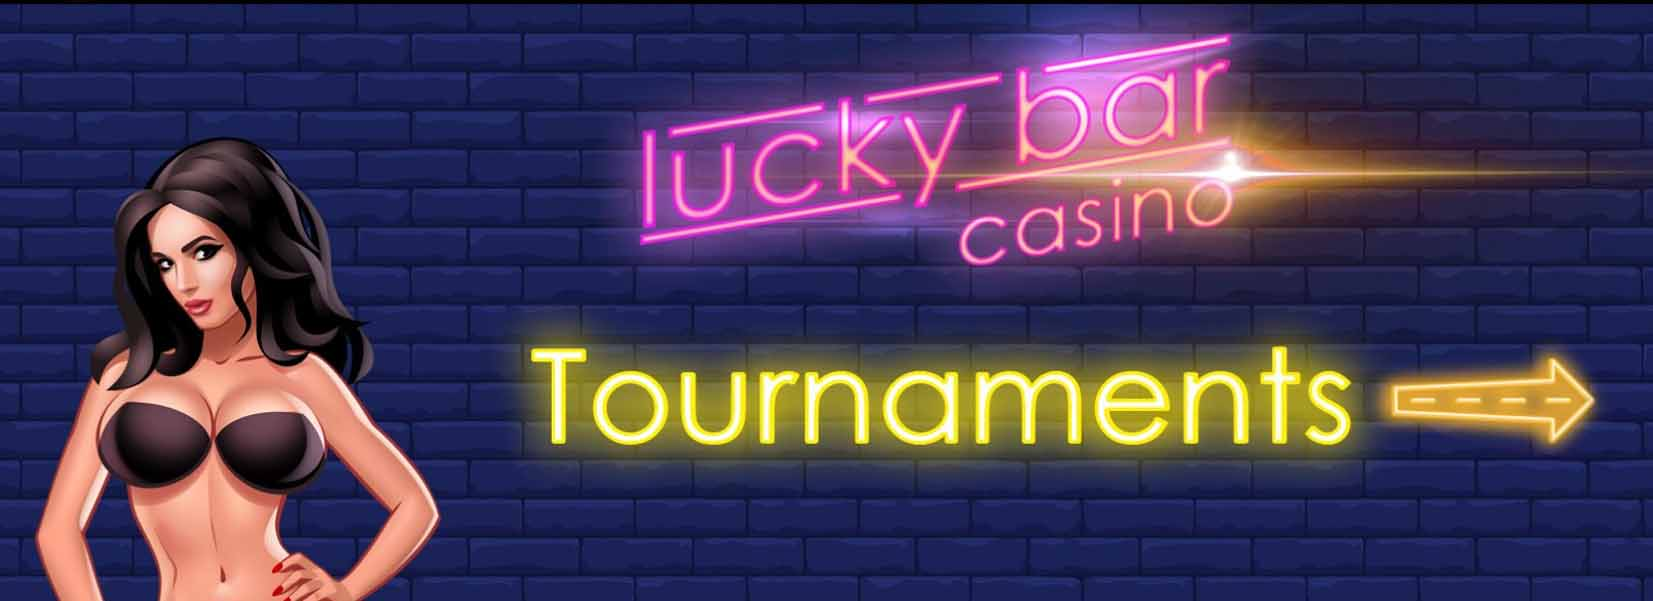 Lucky Bar Casino Review tournaments